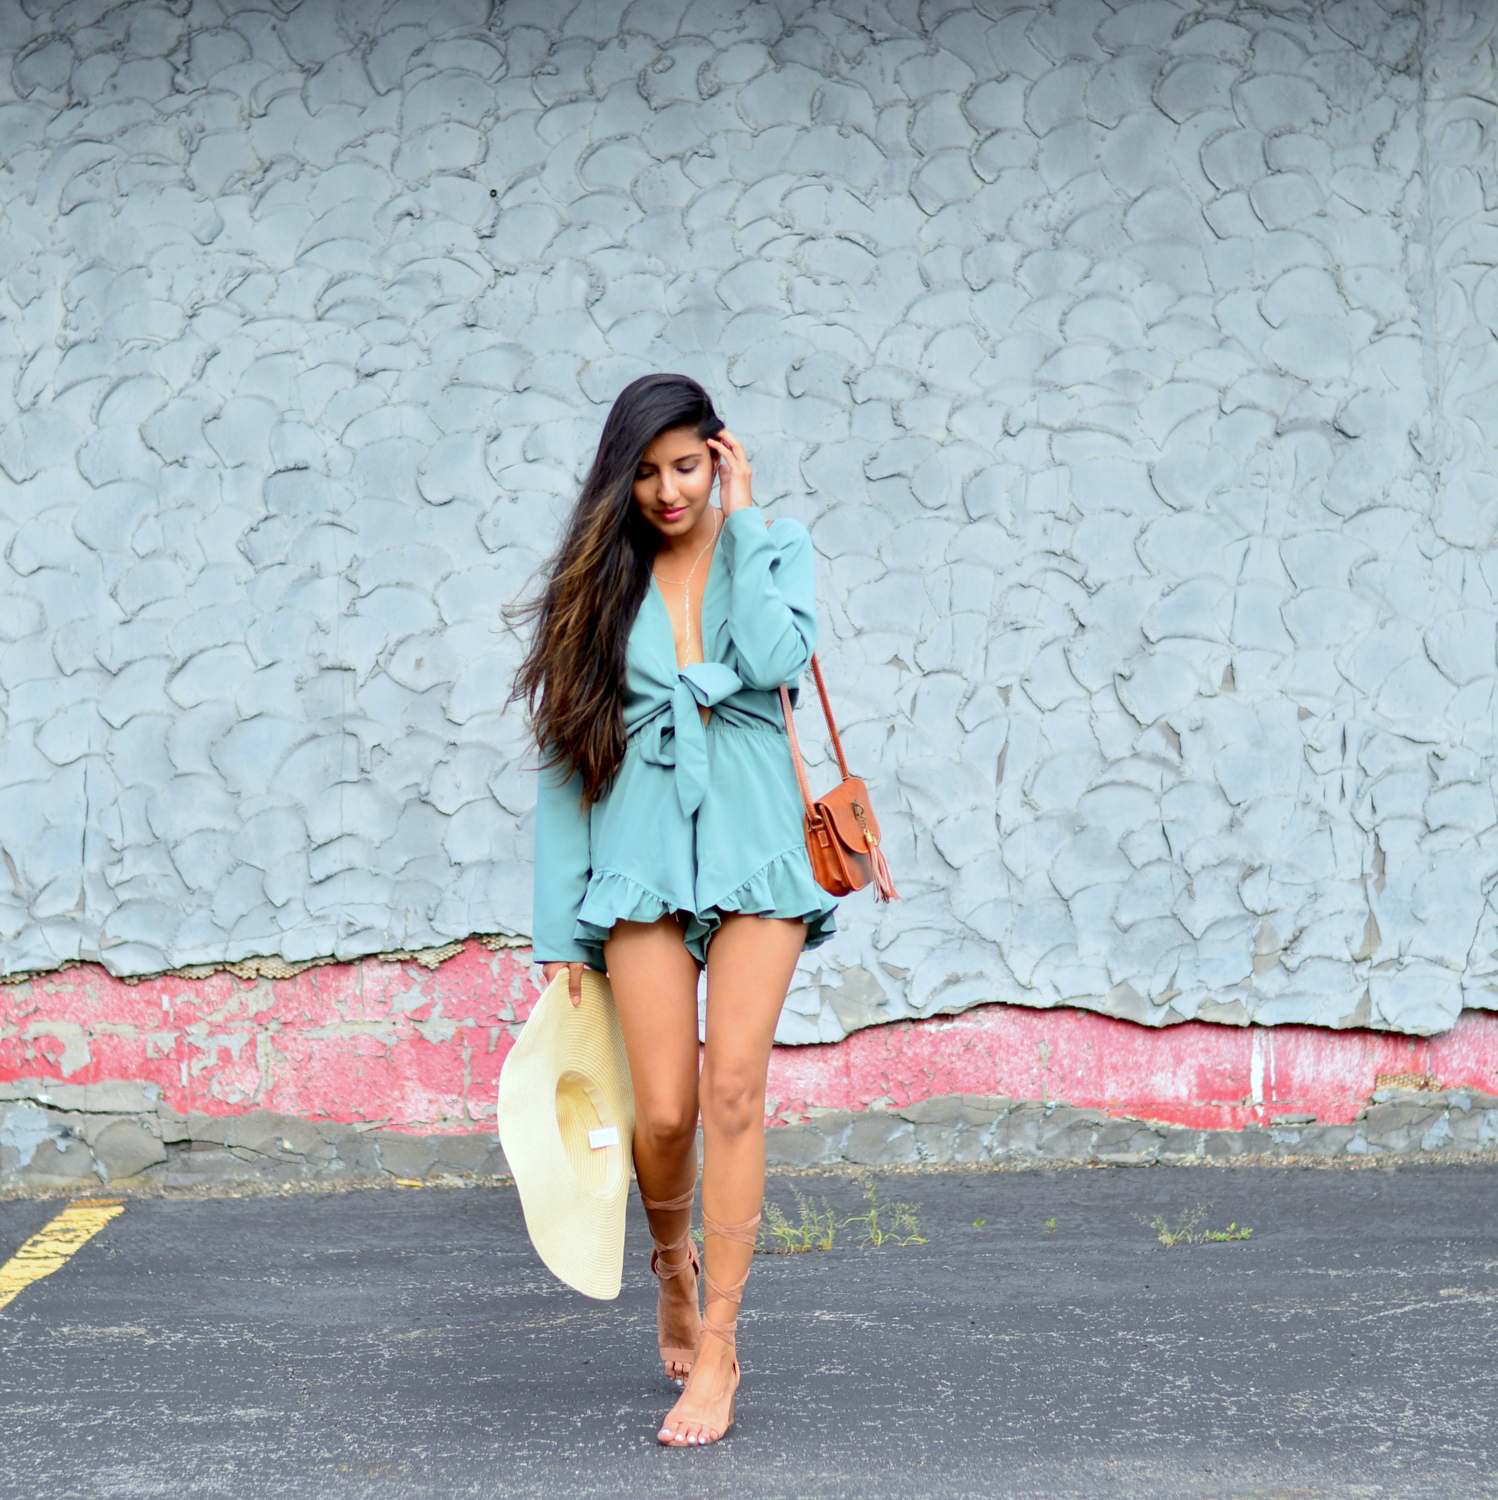 tie-front-romper-playsuit-summer-outfit-blogger-style 3